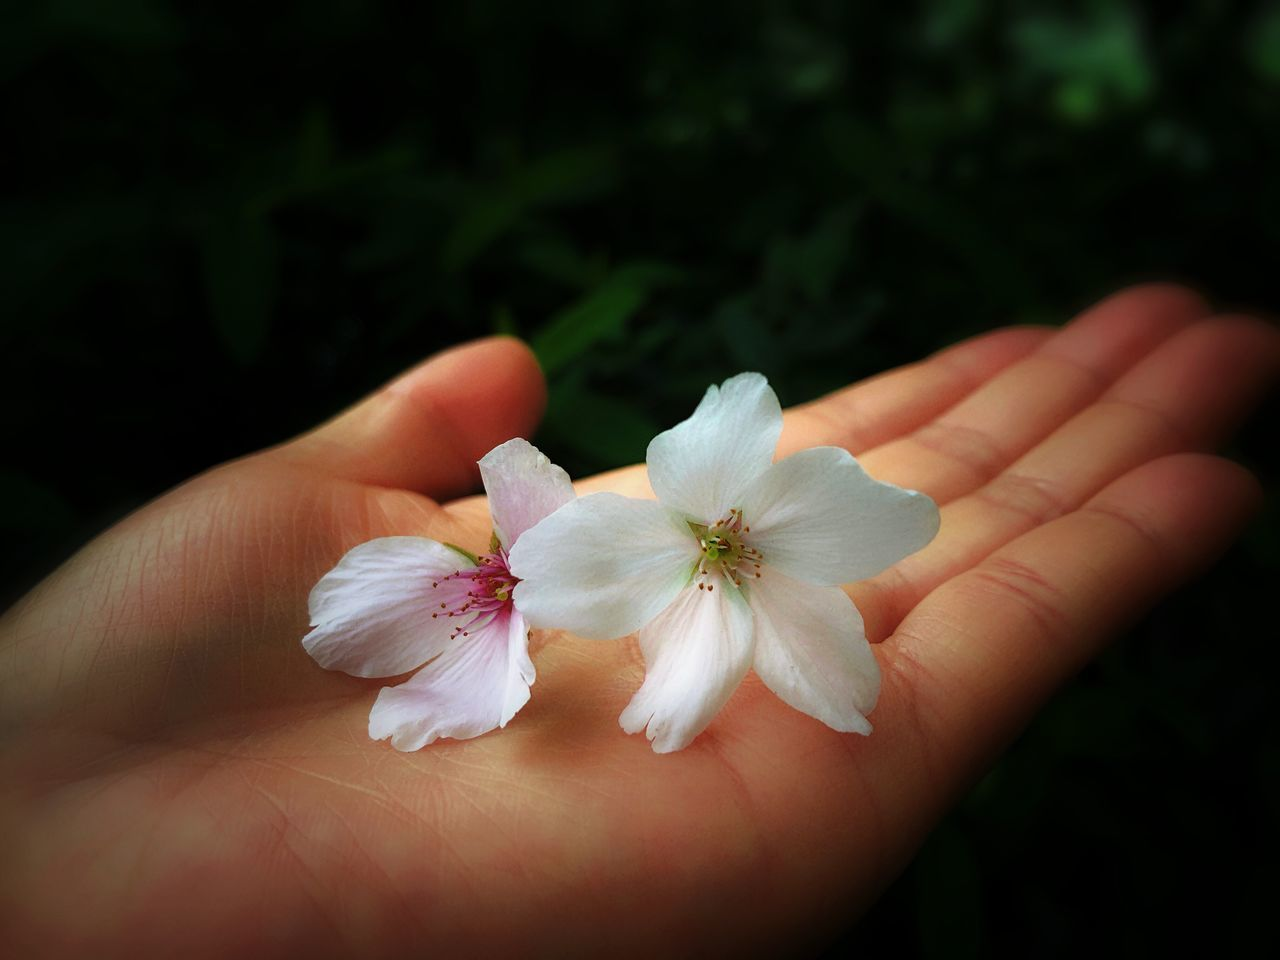 CLOSE-UP OF HAND HOLDING CHERRY BLOSSOMS IN SPRING